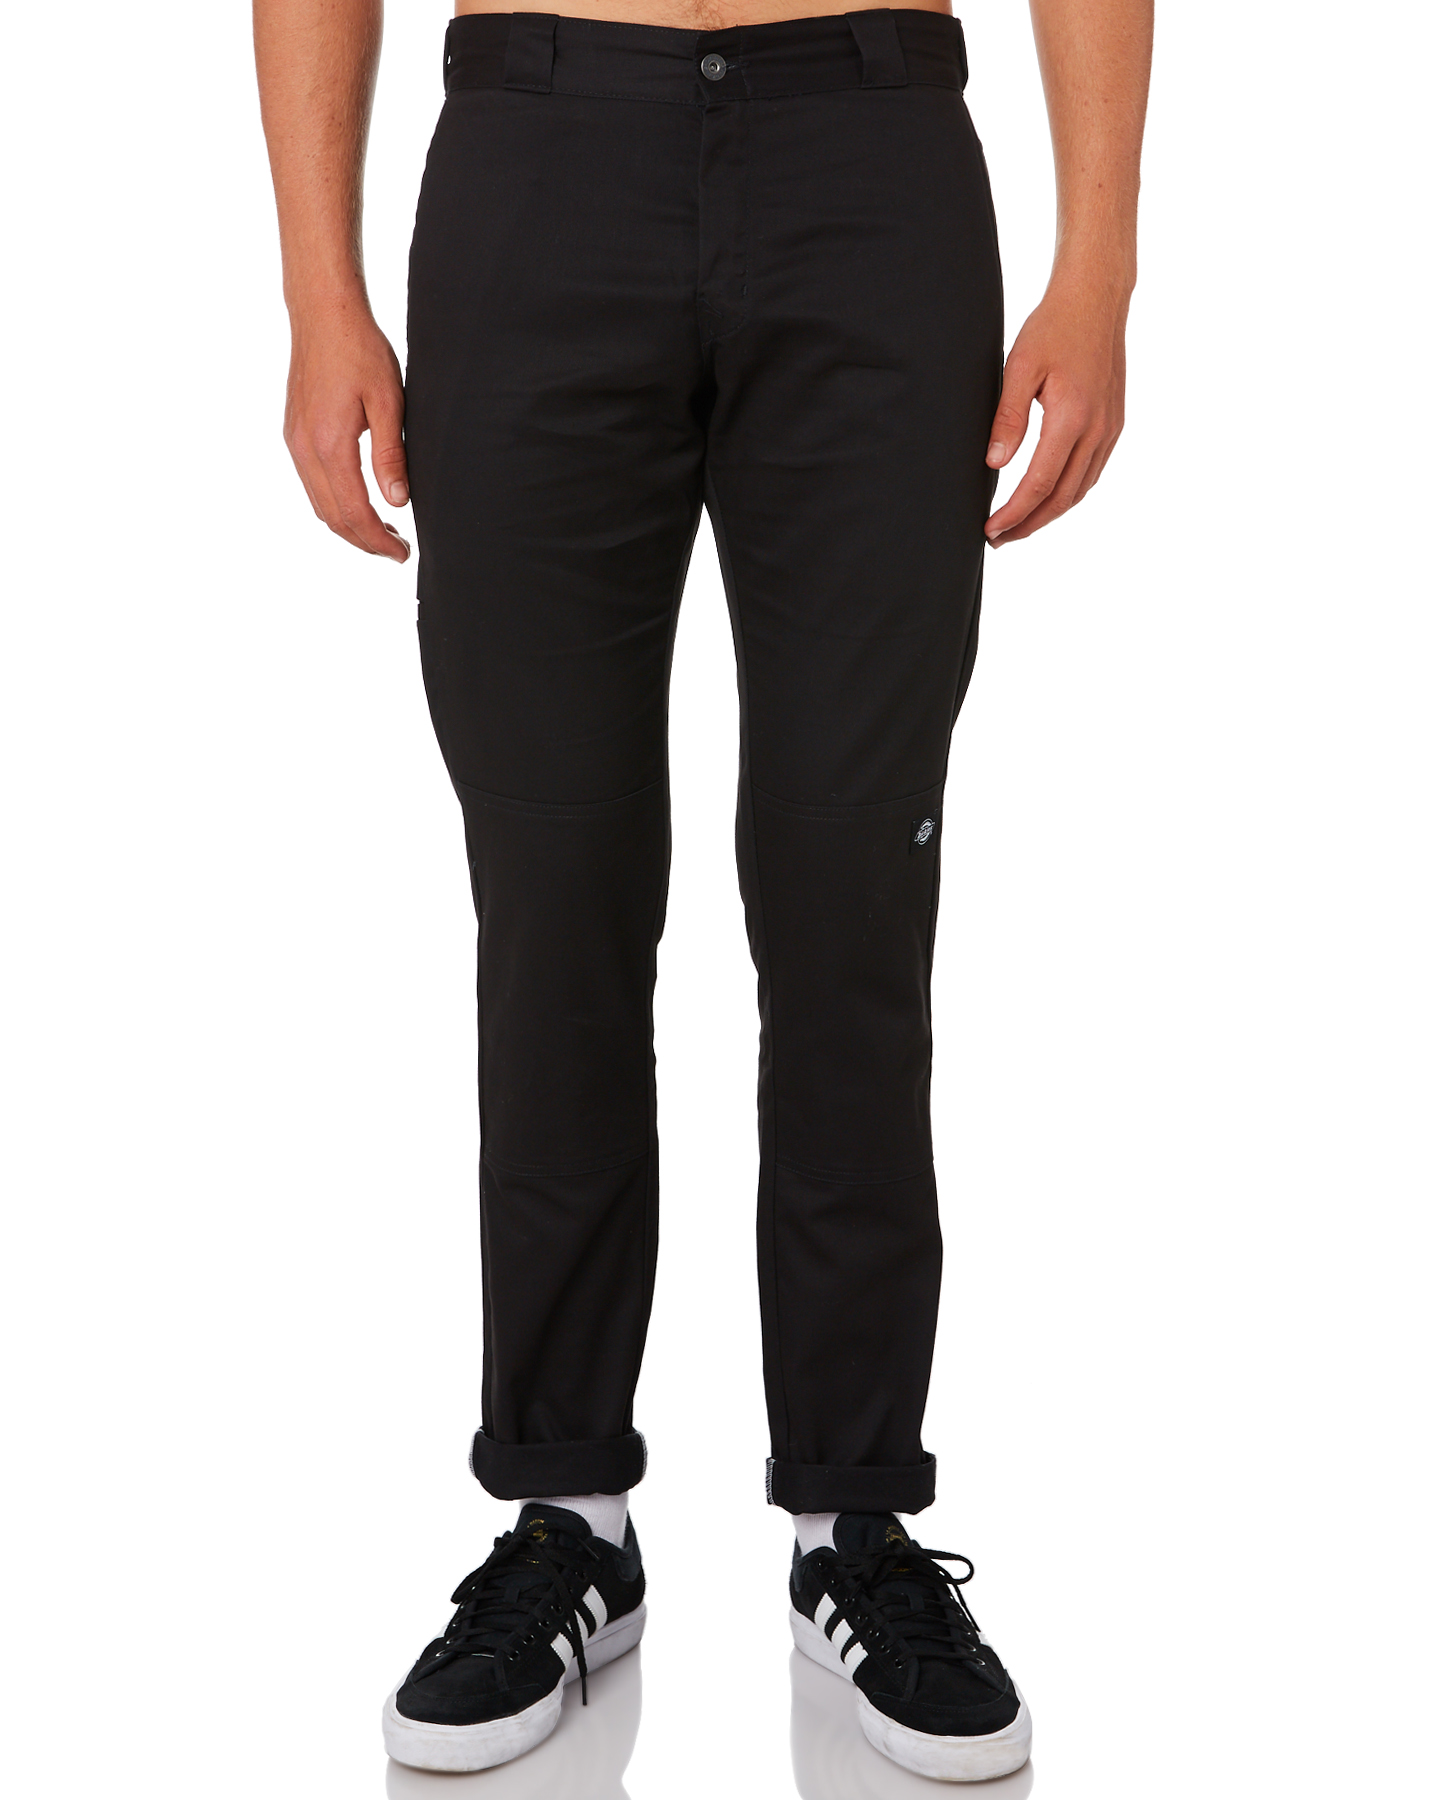 Dickies Polyester Cotton Spandex Chino Style Black Mens Work Pants